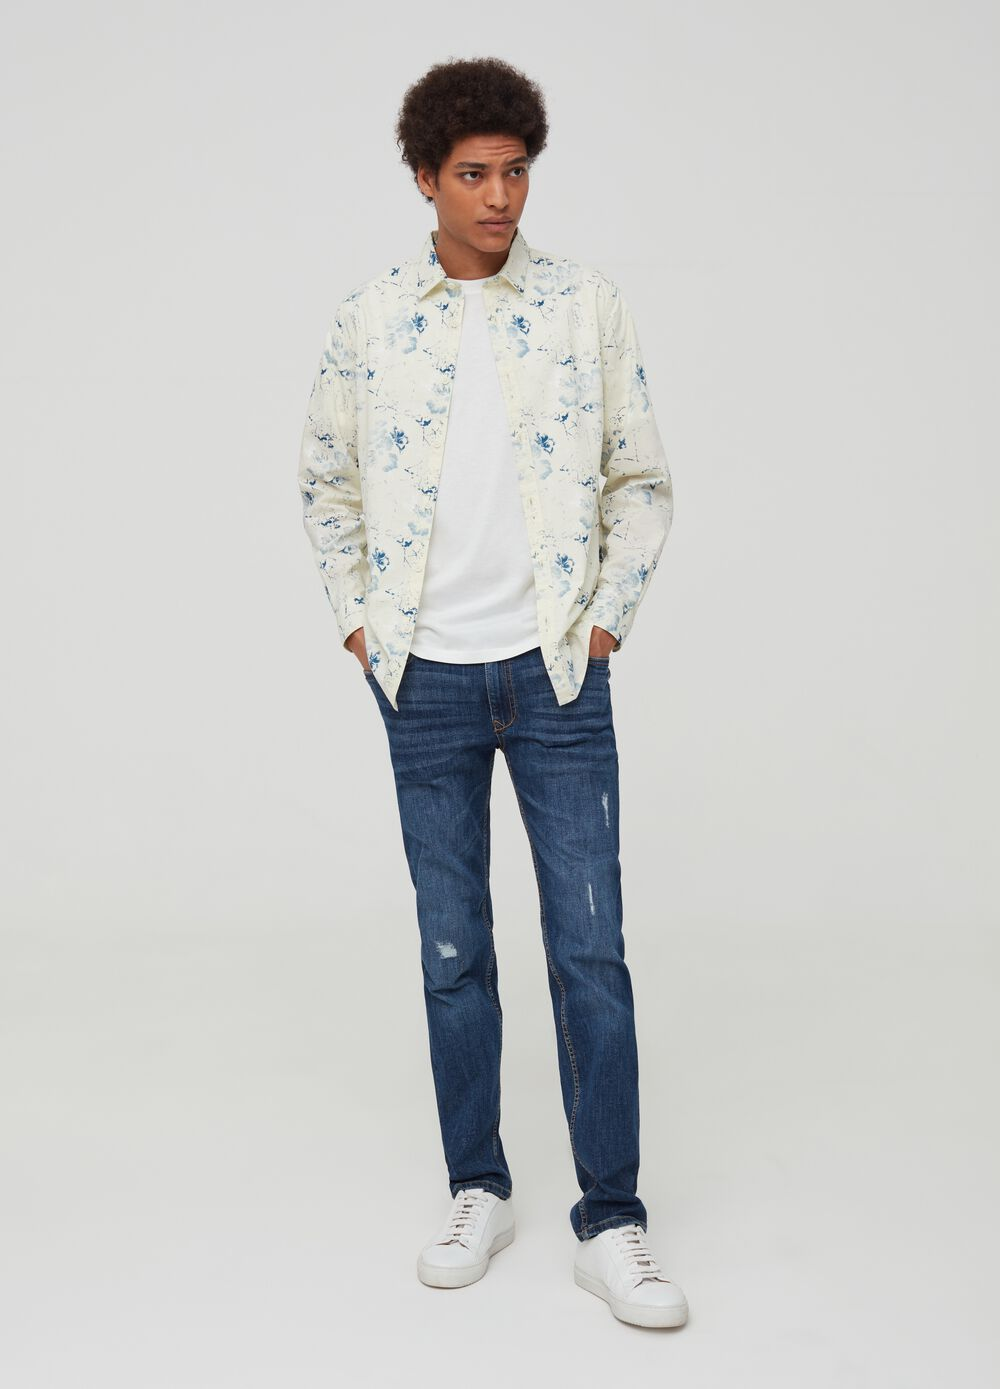 Patterned shirt in 100% cotton